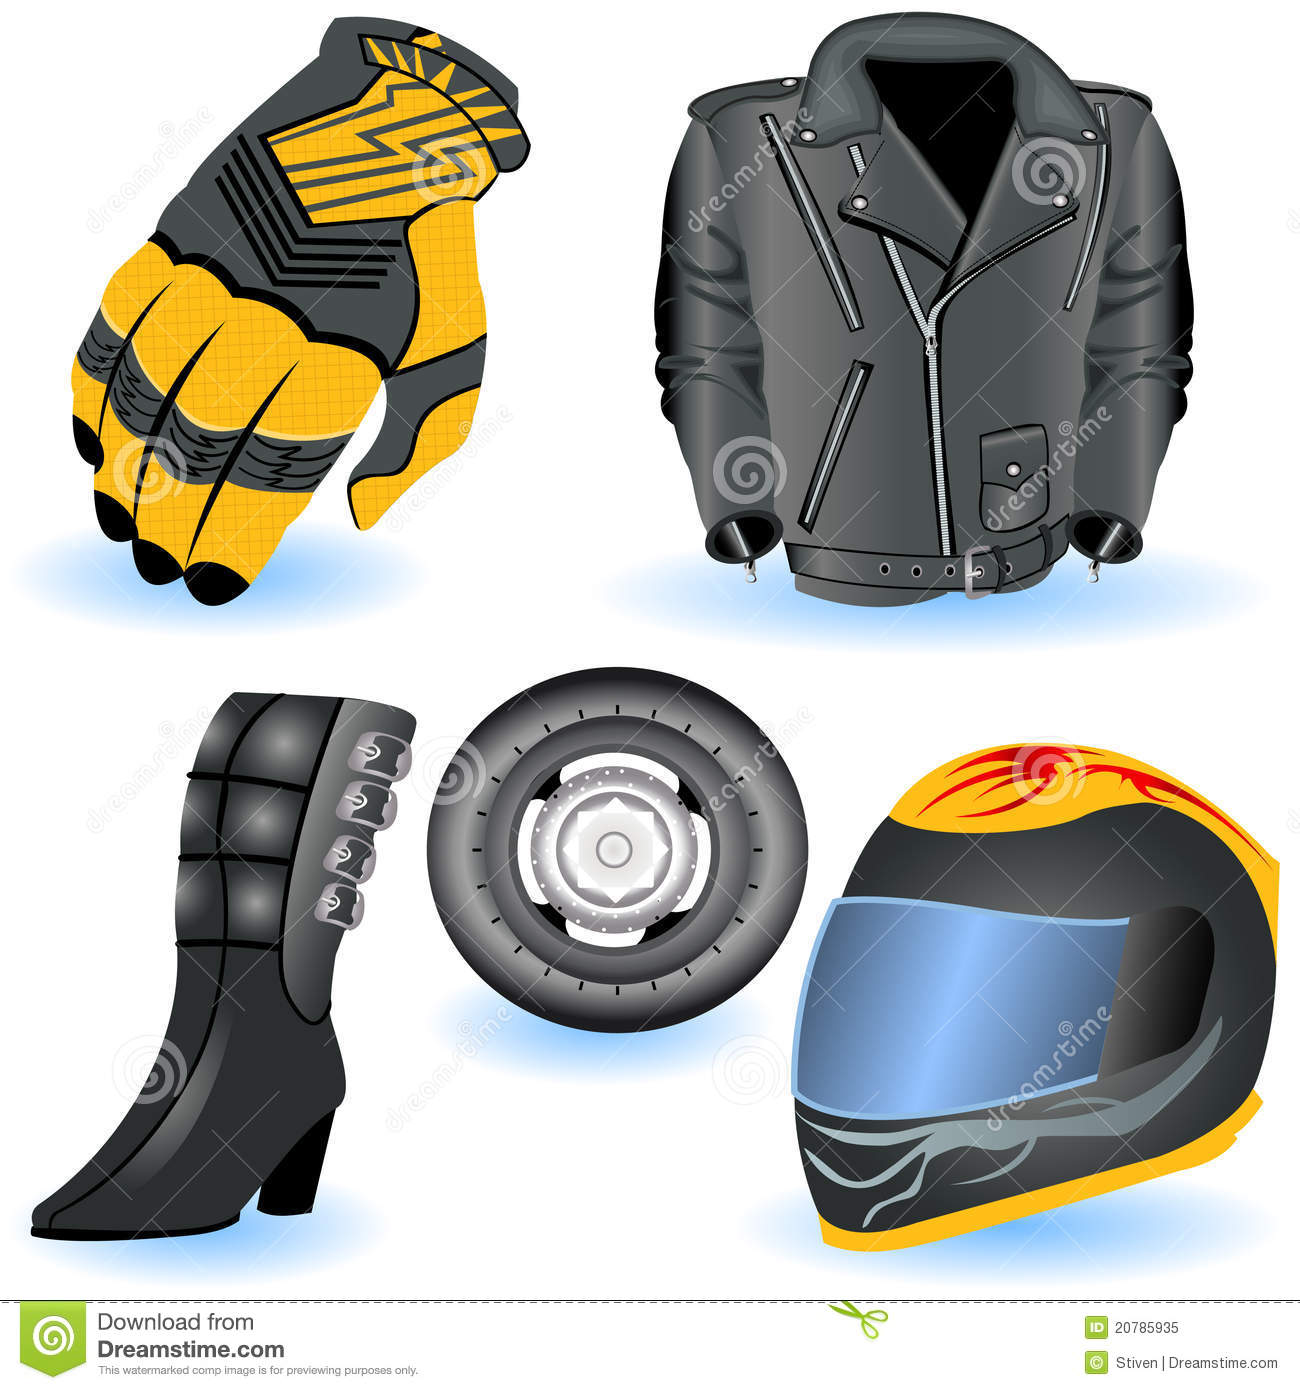 Sportbike Riding Boots >> Motorcycle Helmet, Gloves And Boots. Royalty-Free Stock Photography | CartoonDealer.com #89015687